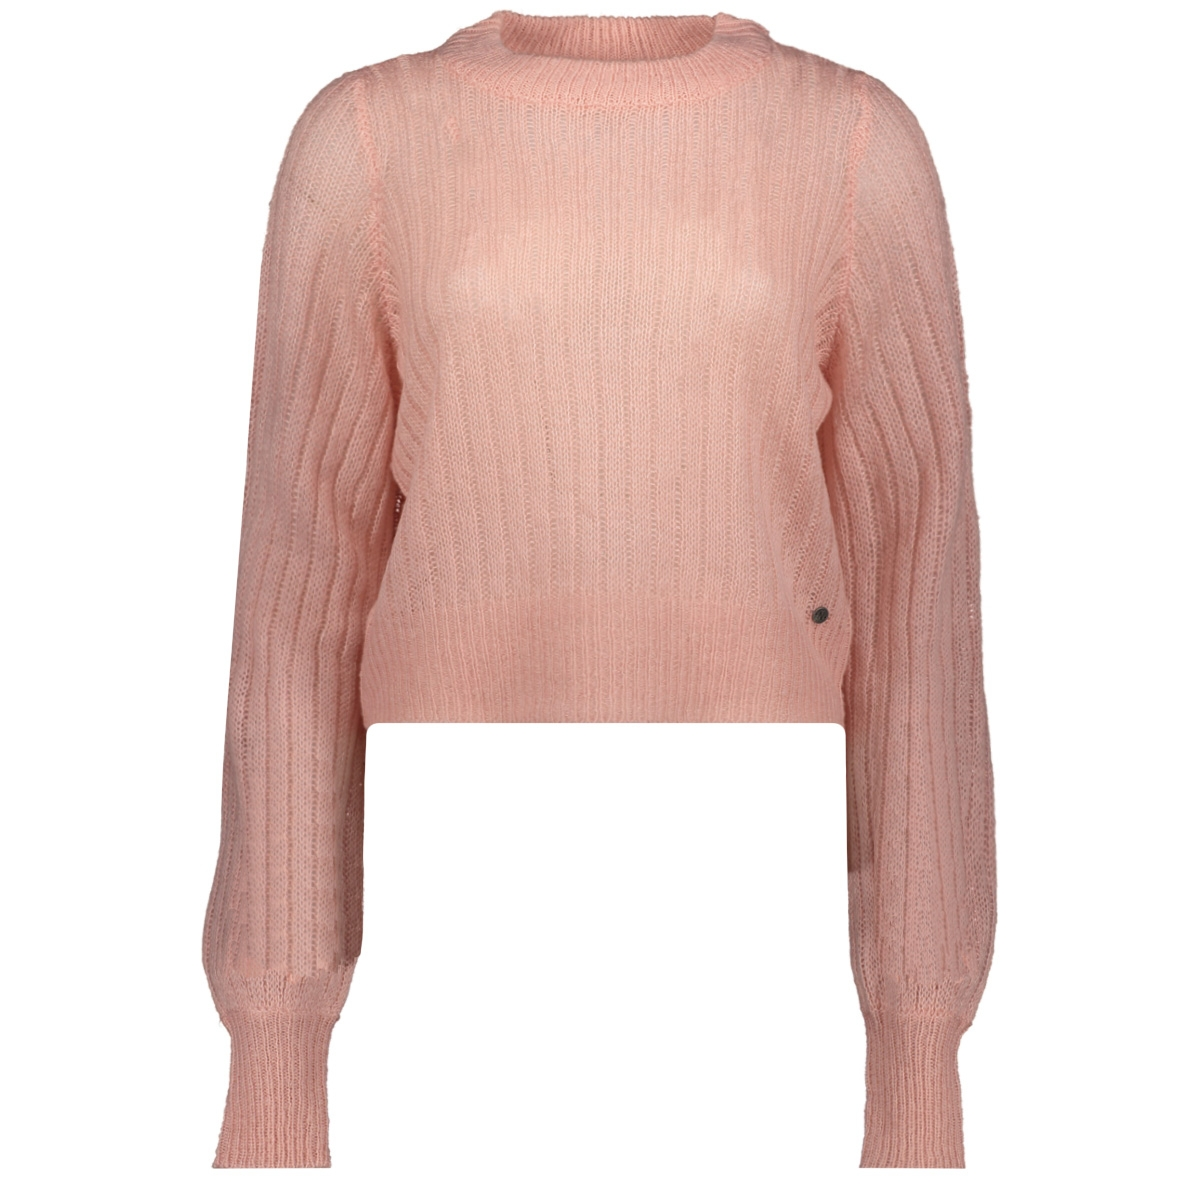 nmsabby l/s o-neck knit 27011413 noisy may trui silver pink